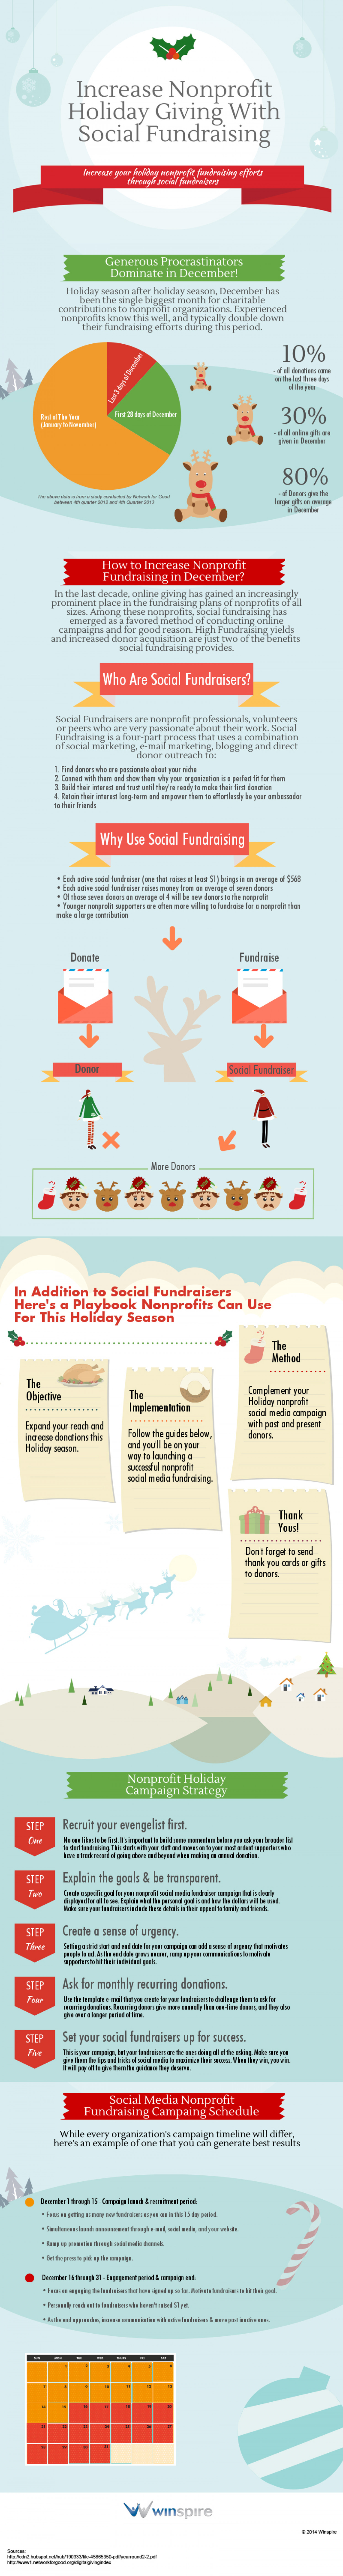 Increase Nonprofit Holiday Giving with Social Fundraising Infographic